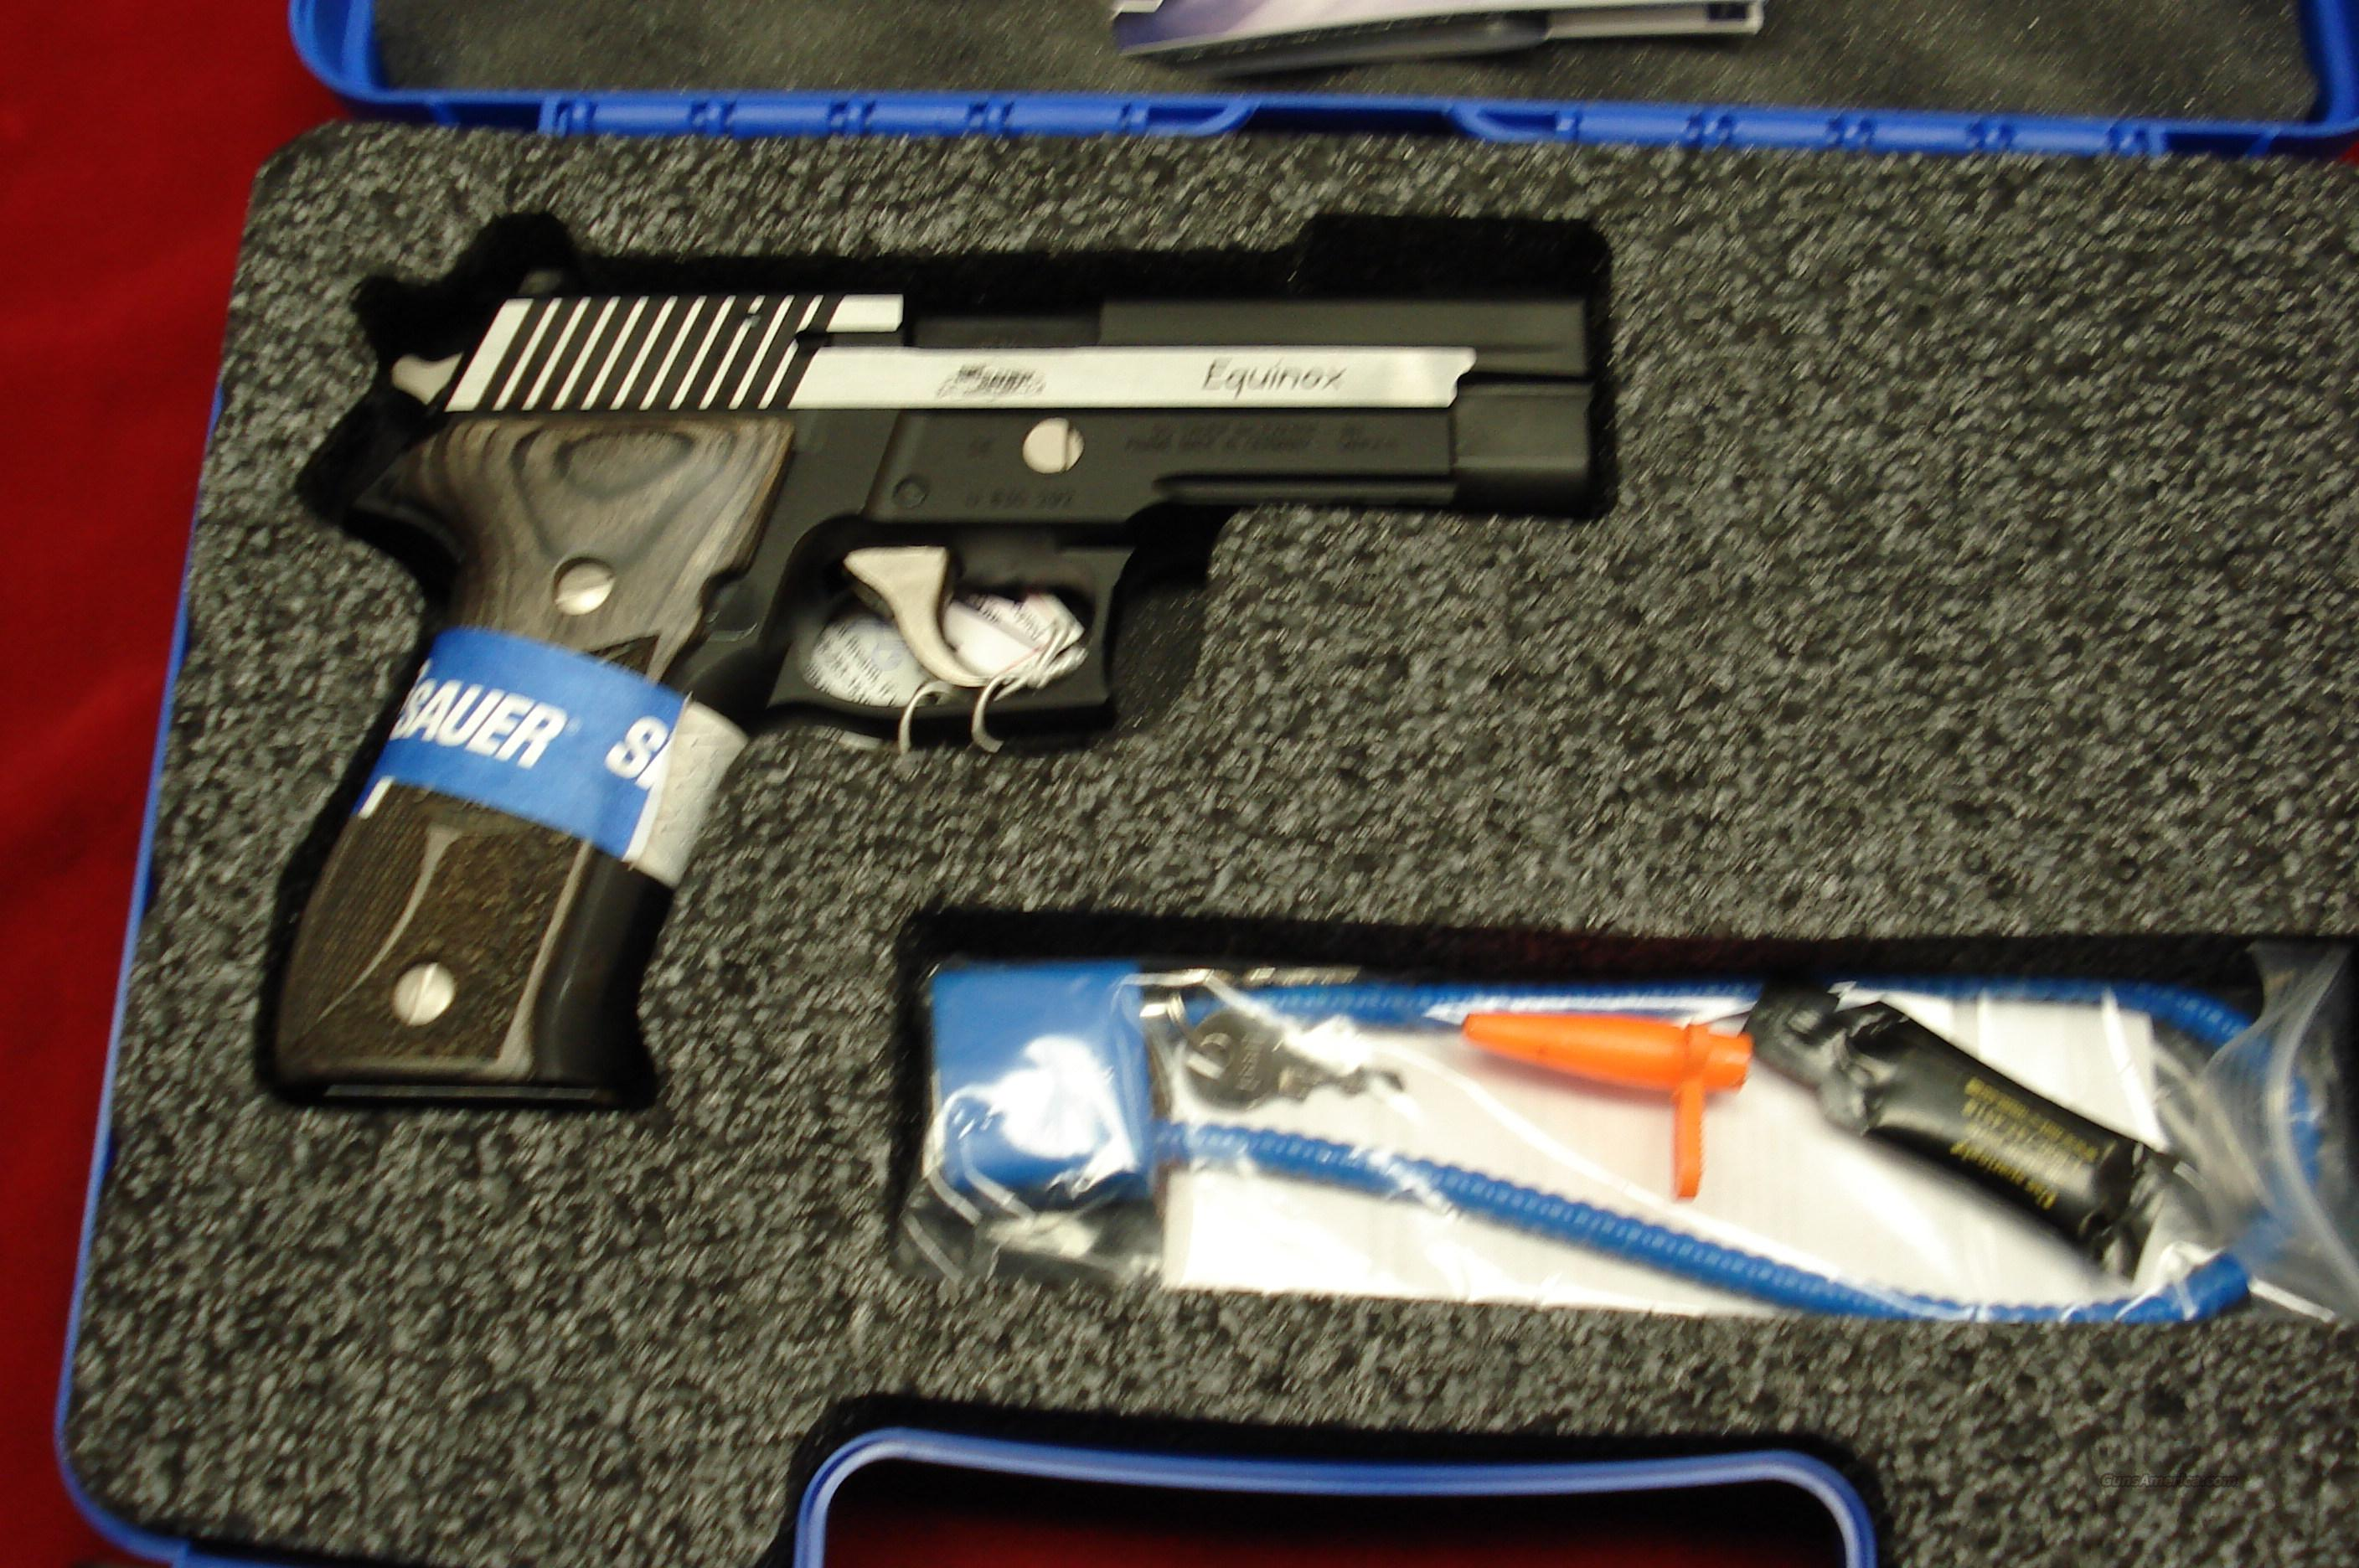 SIG SAUER P226 EQUINOX 40CAL. STAINLESS TWO TONE WITH NIGHT SIGHTS NEW   Guns > Pistols > Sig - Sauer/Sigarms Pistols > P226